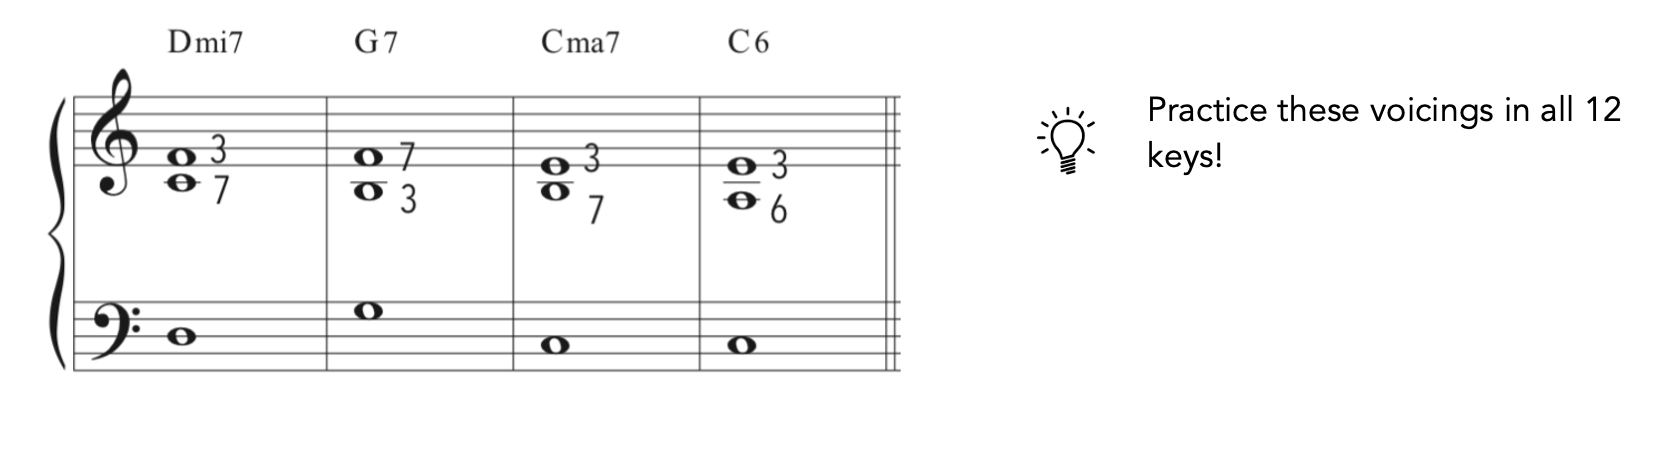 easy jazz piano voicings in piano notation